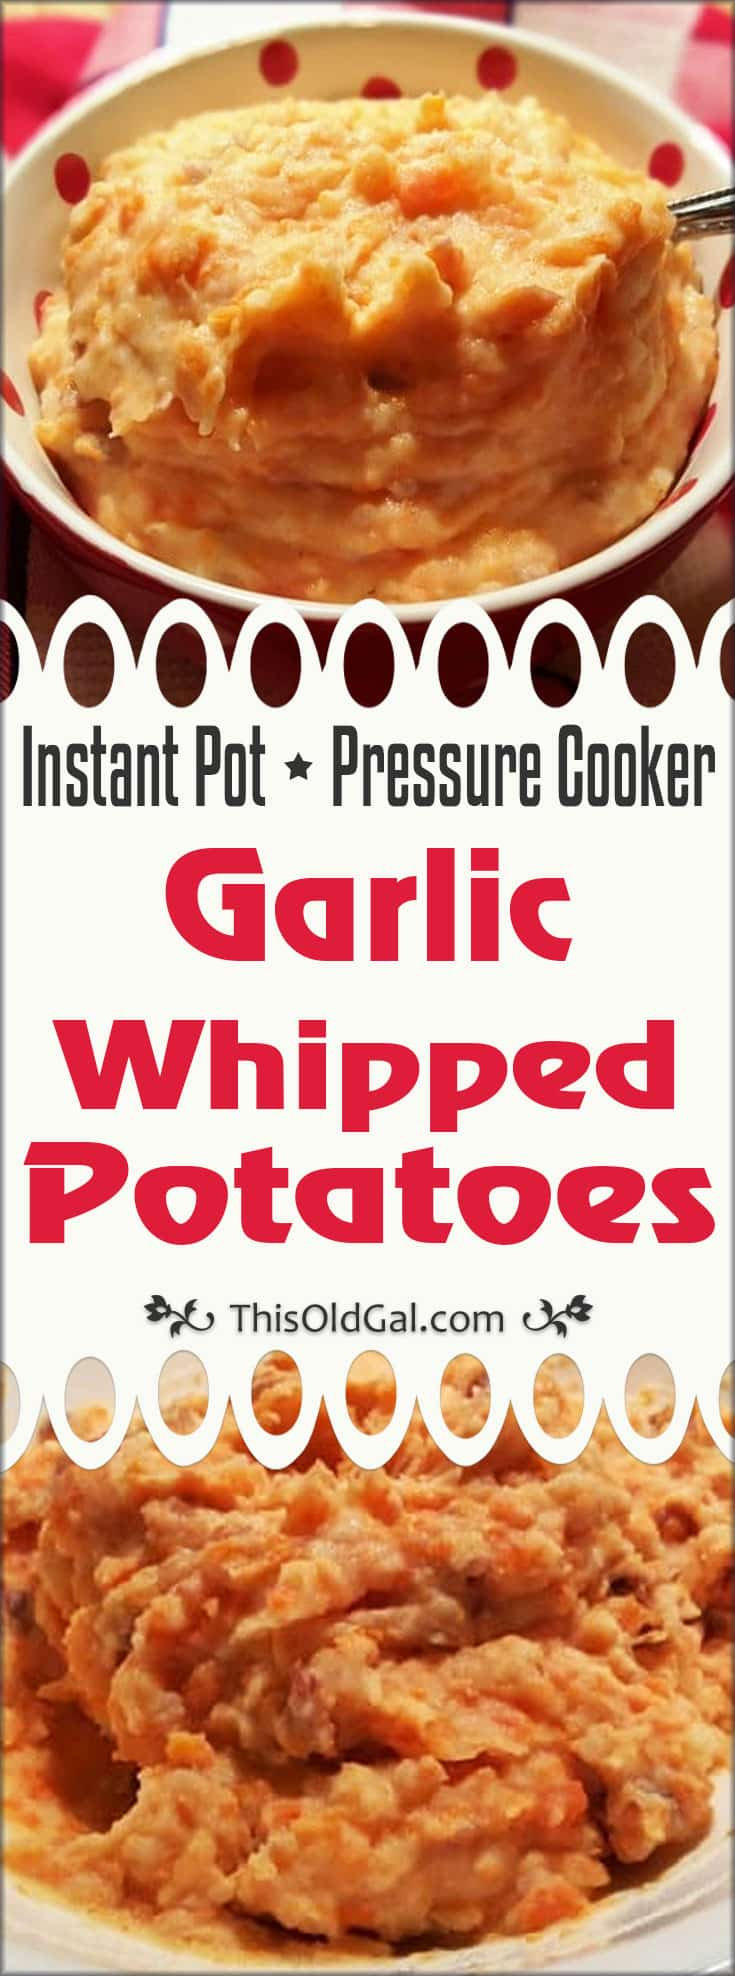 Pressure Cooker Garlic Whipped Potatoes (Instant Pot)